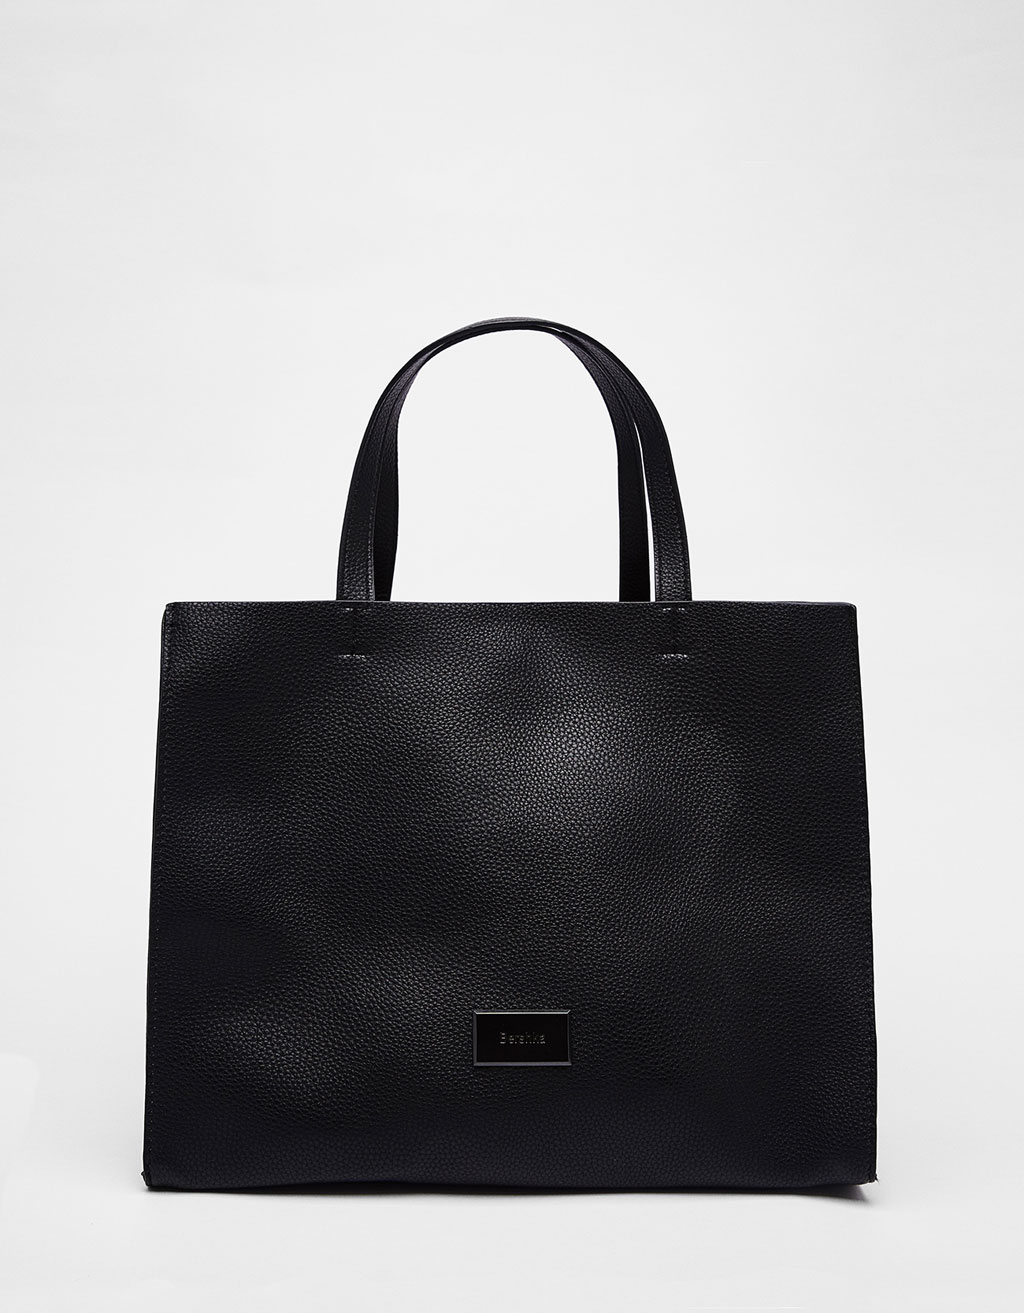 Soft tote bag